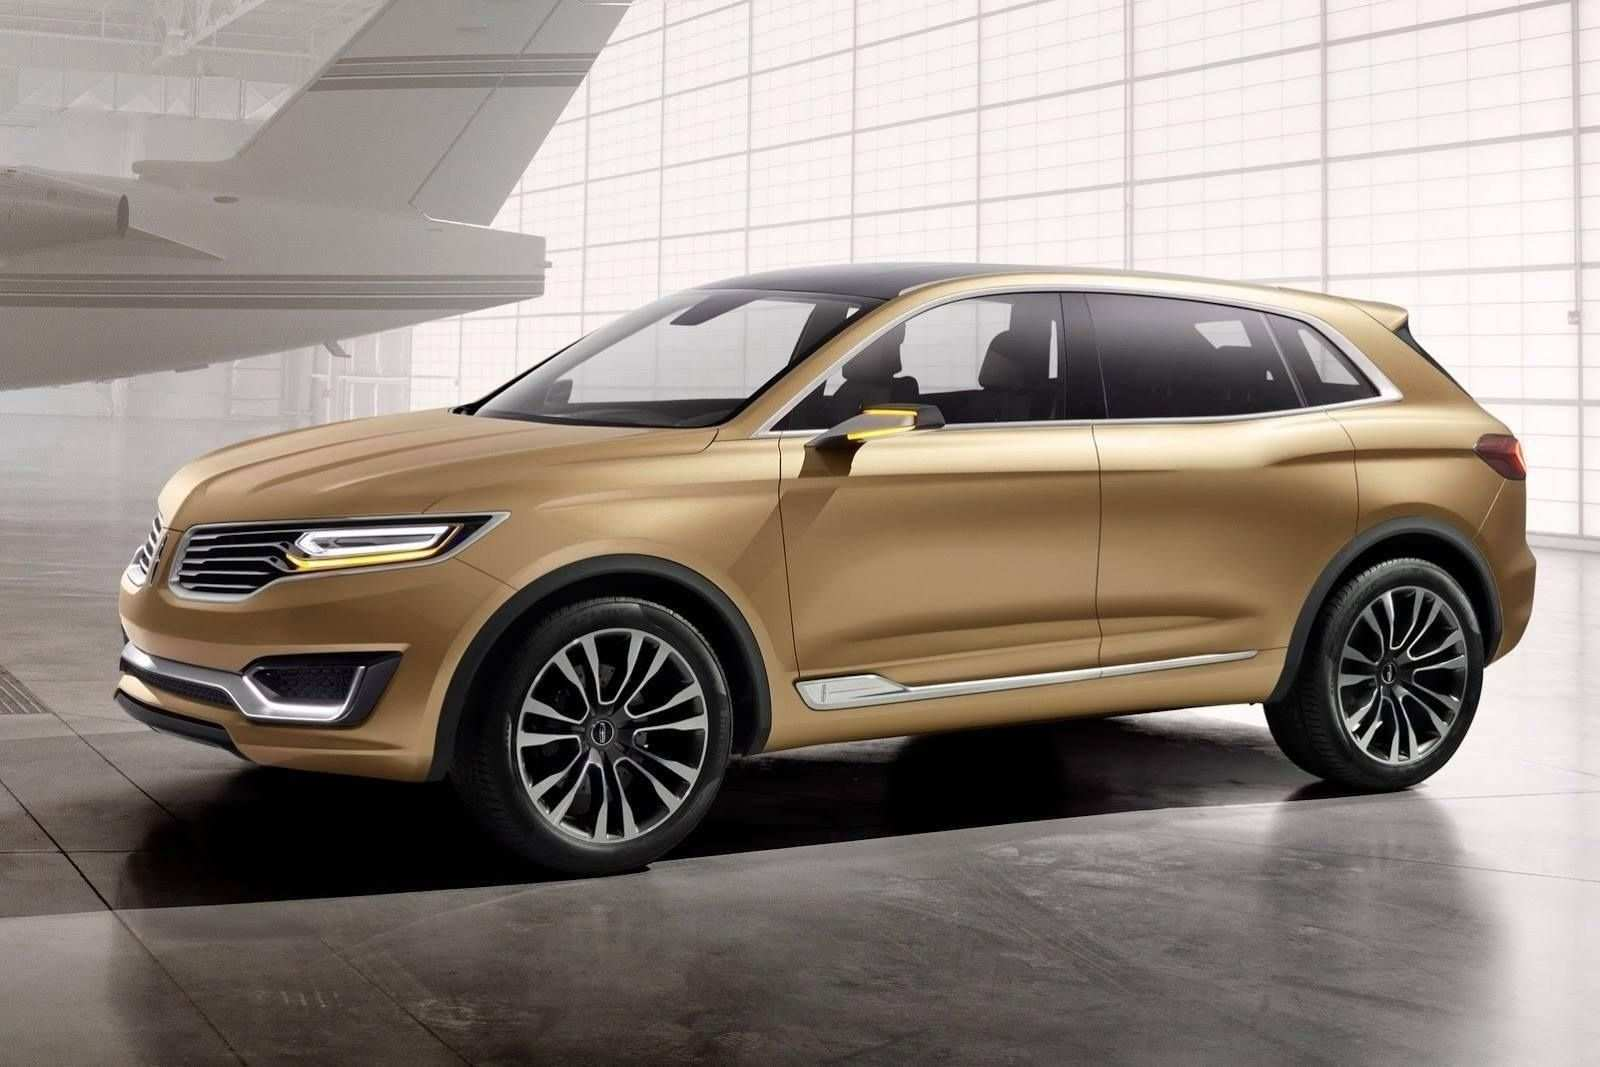 2020 Lincoln Mkx At Beijing Motor Show Performance